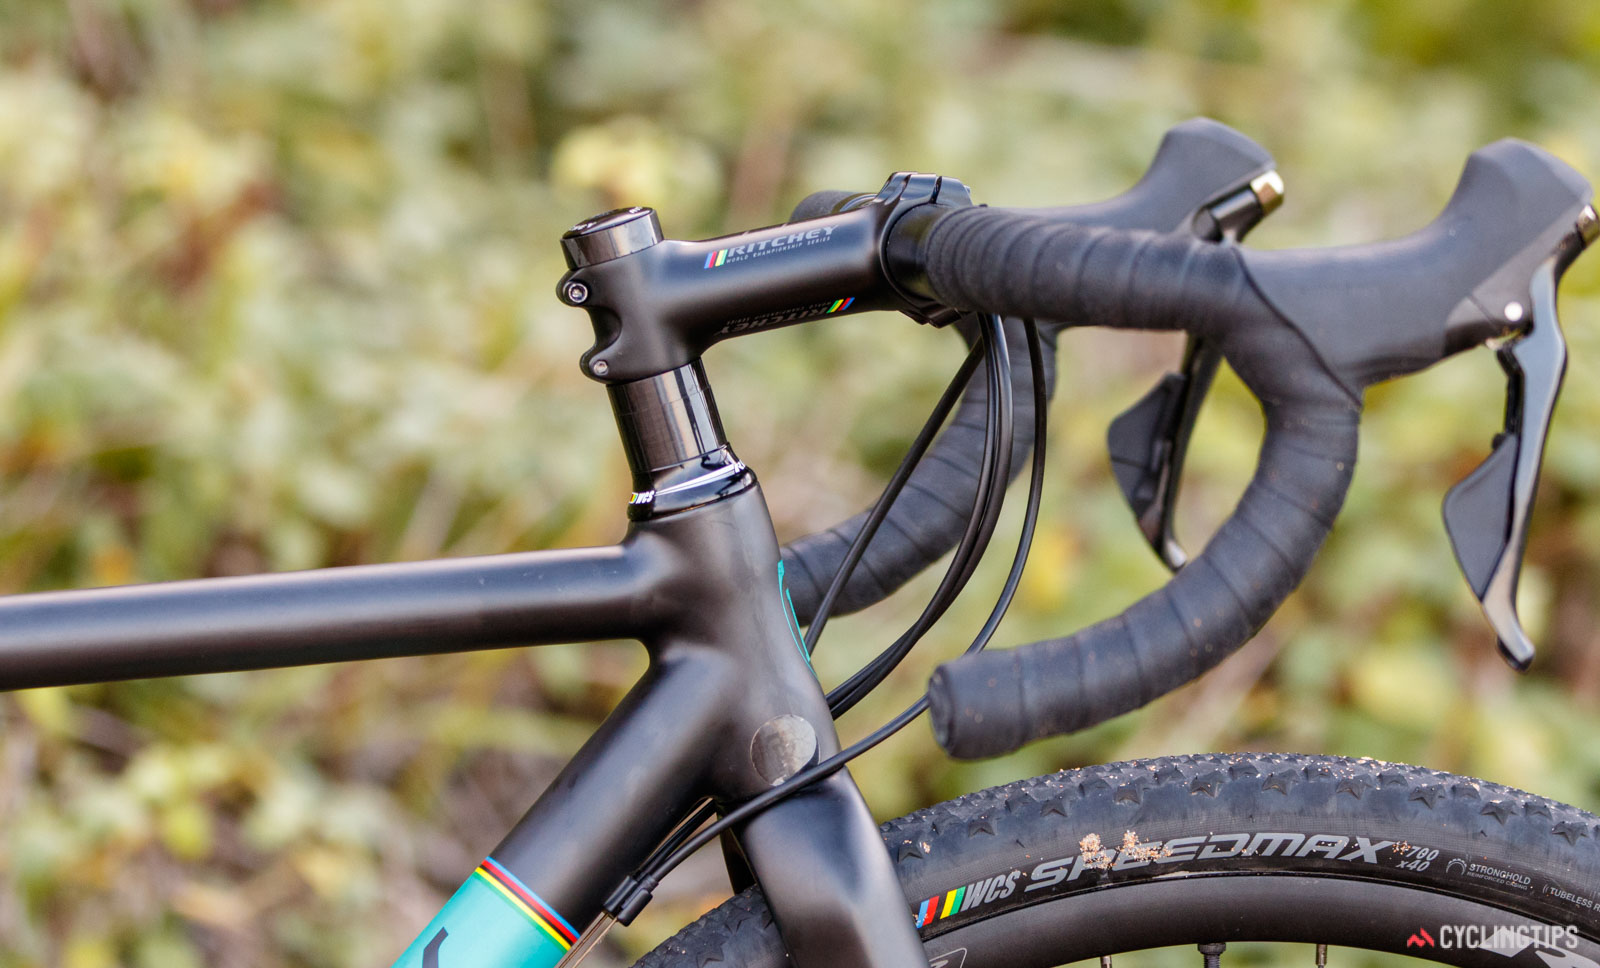 Ritchey Outback Carbon Break-Away front end